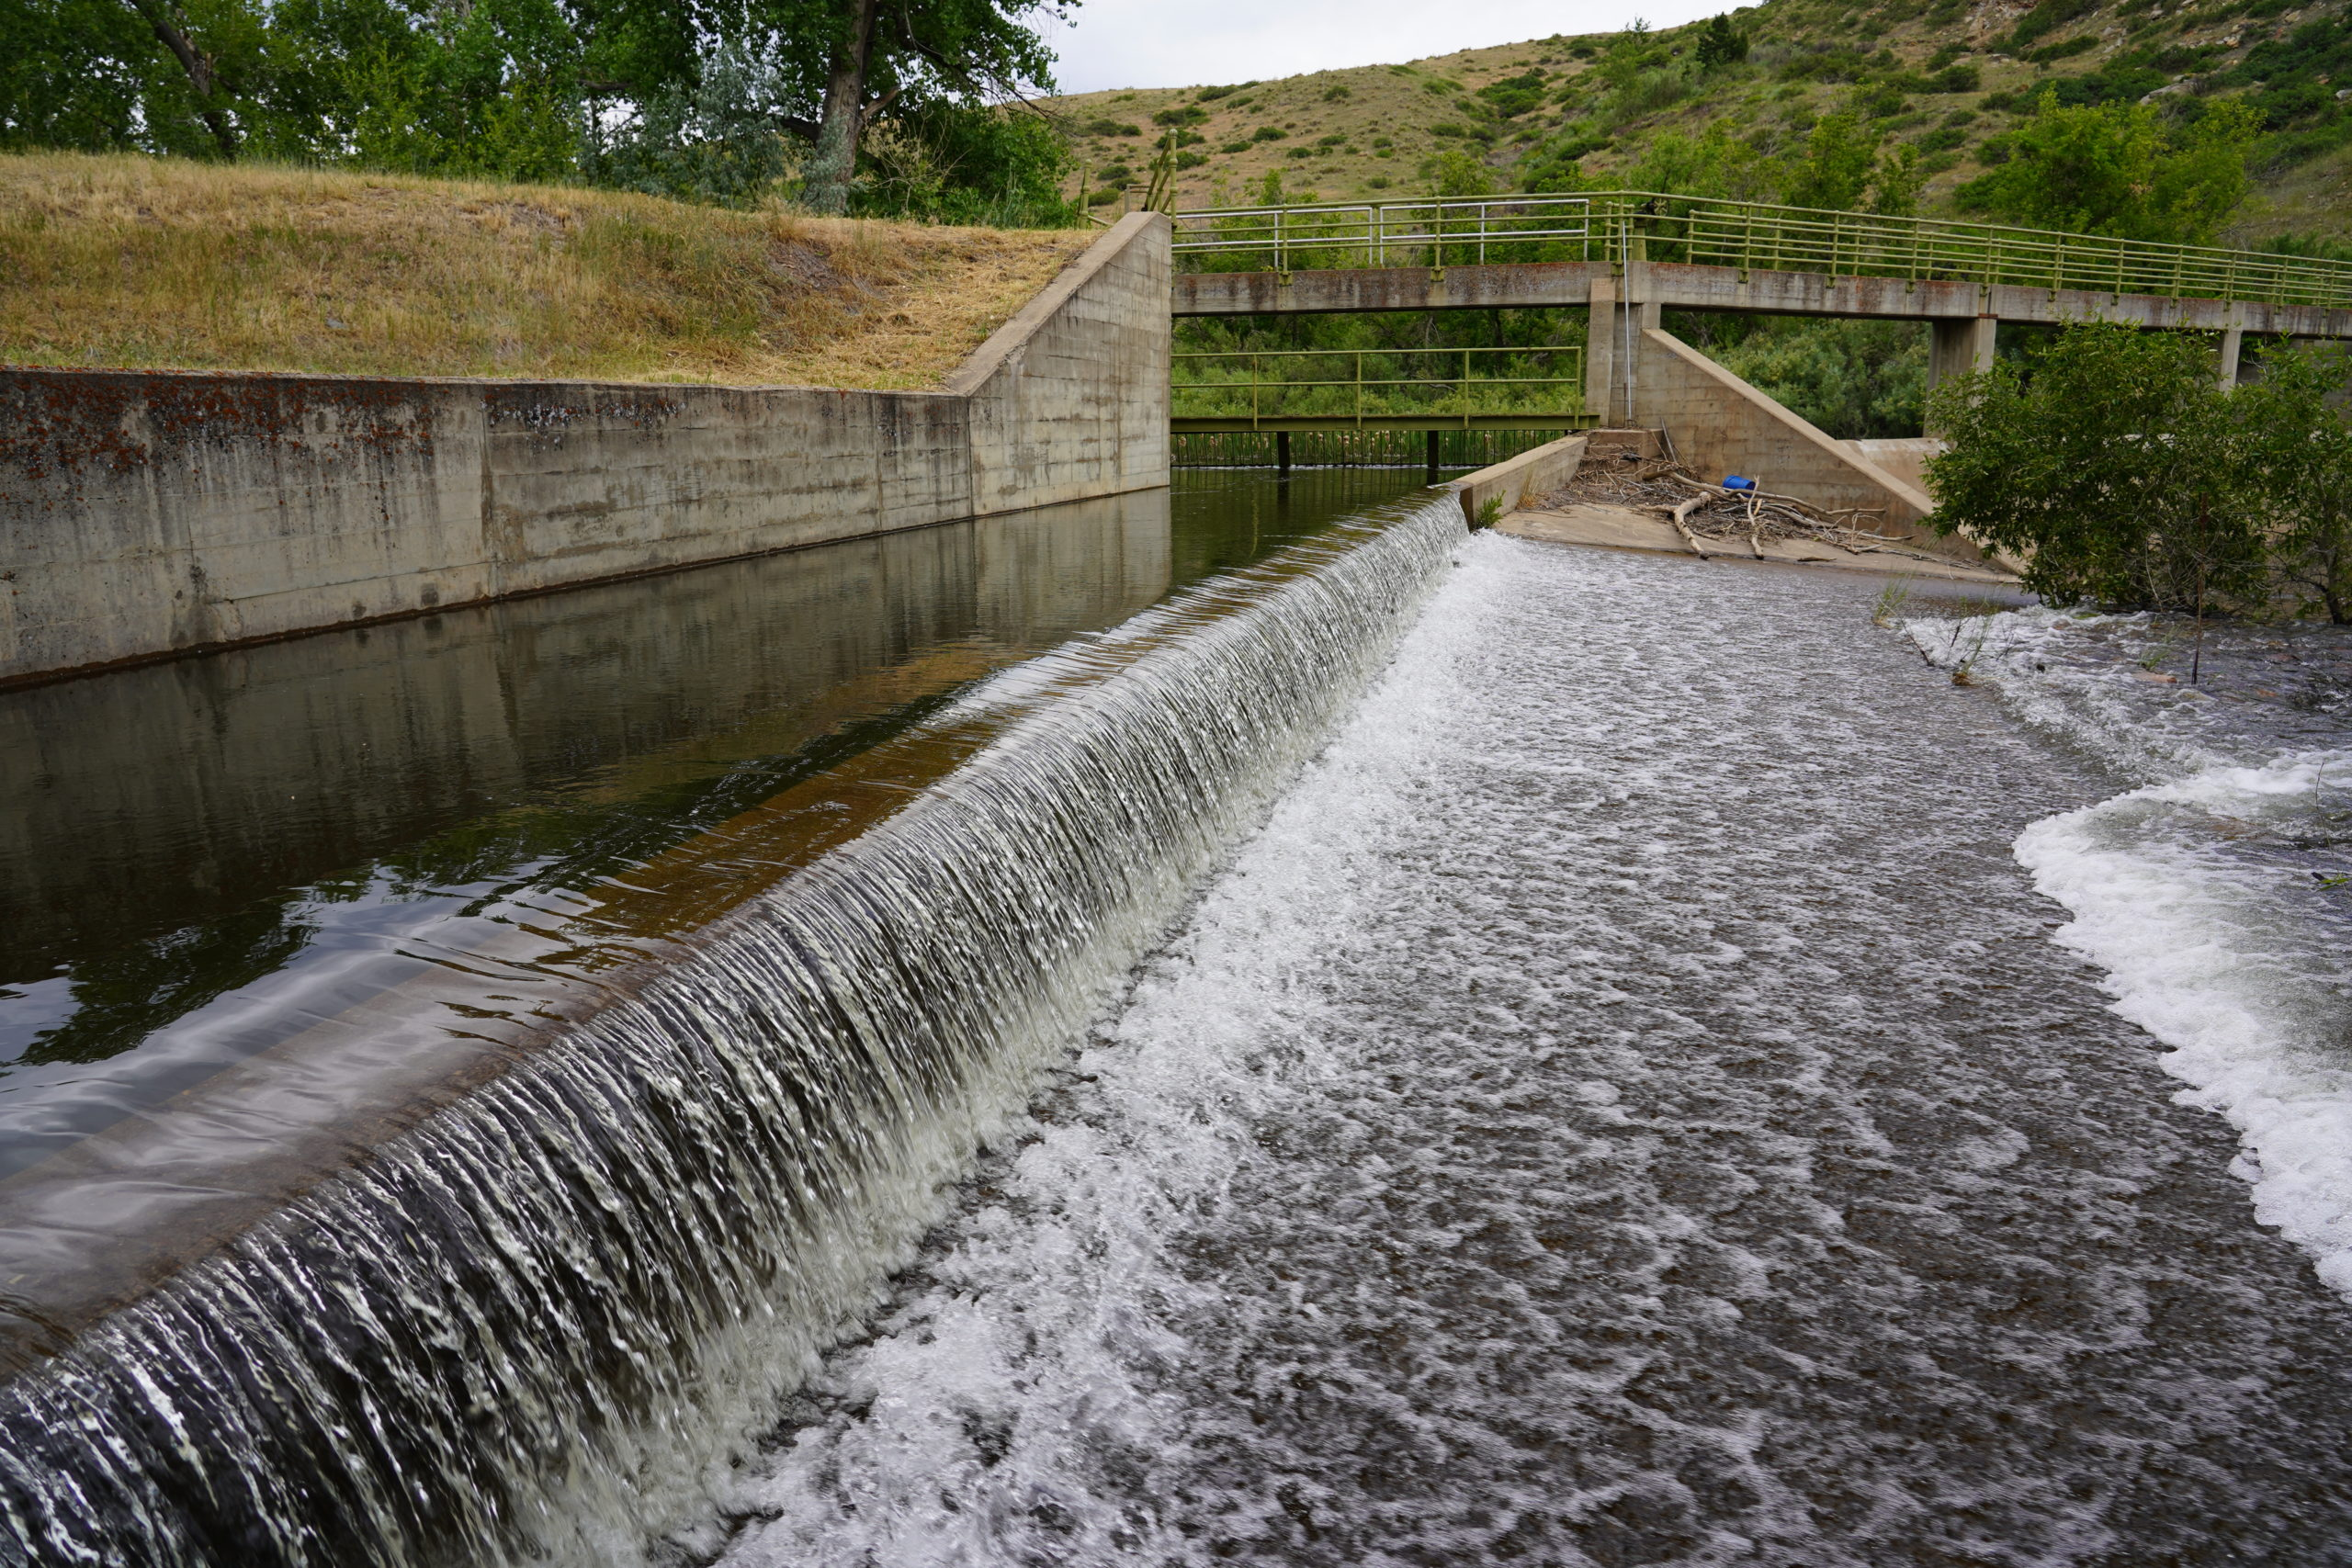 Water flows over a concrete dam.